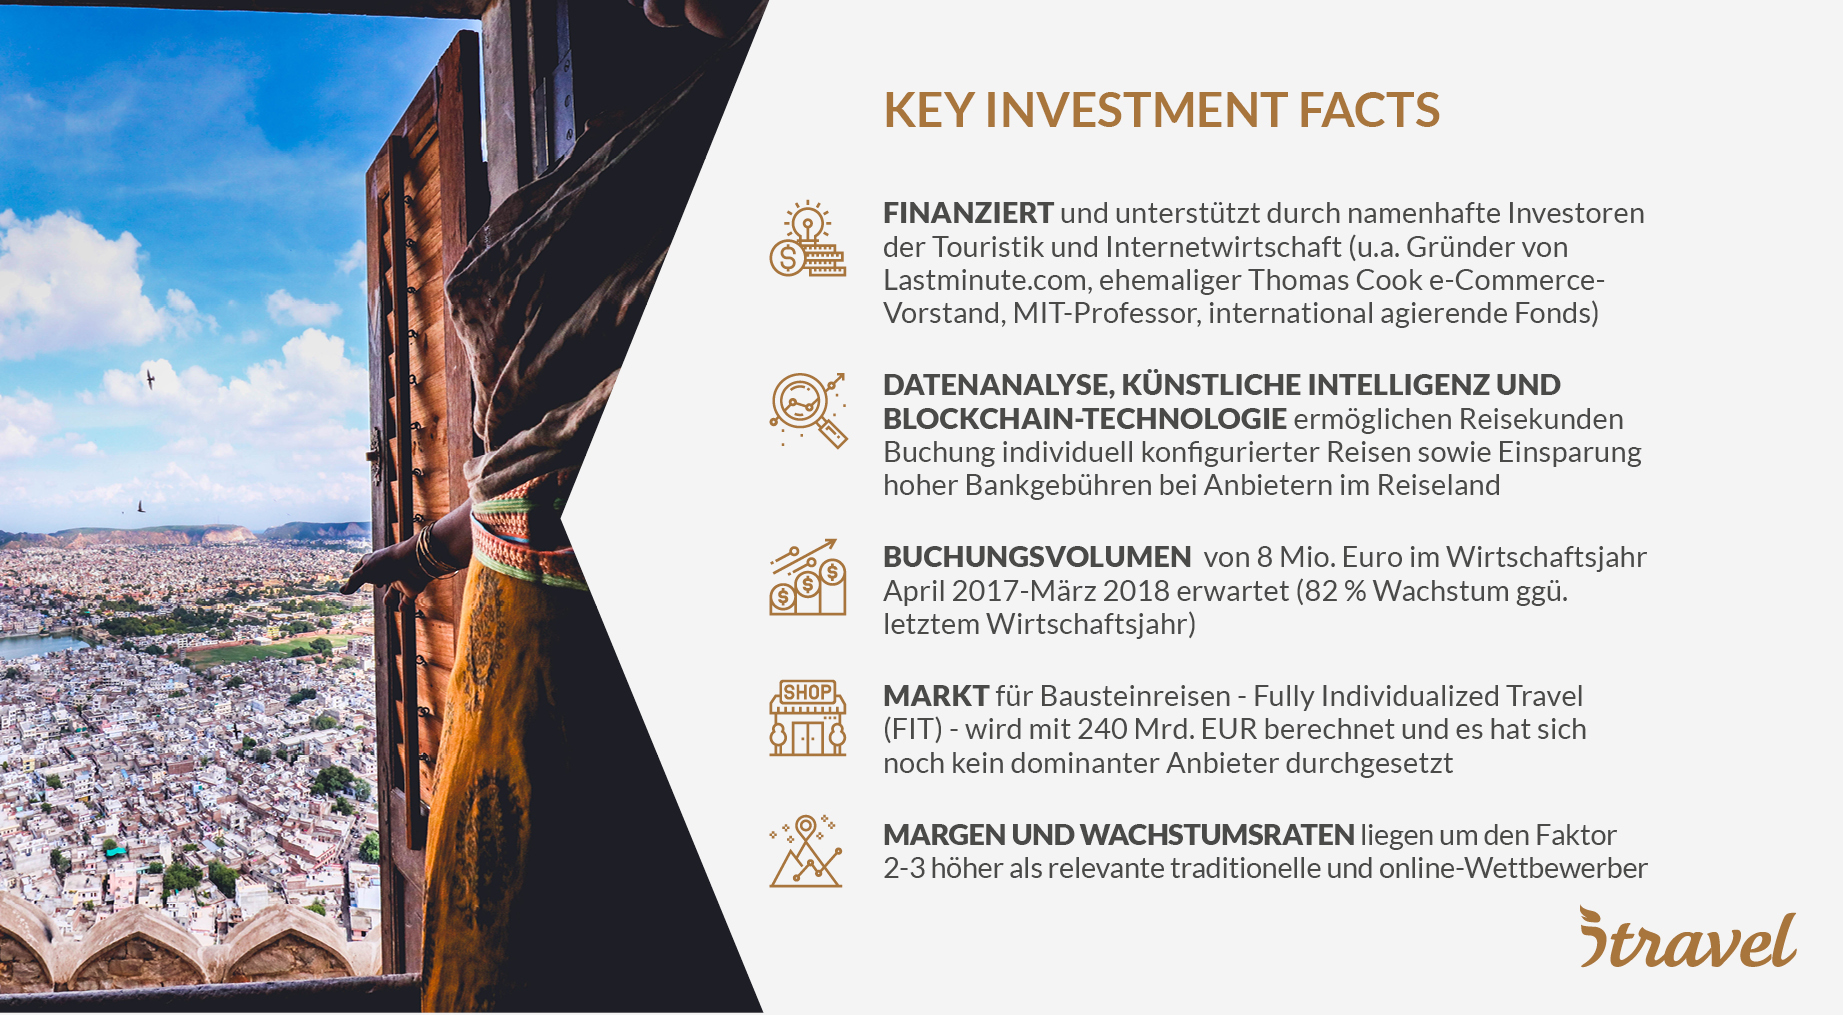 itravel - Key Investment Facts